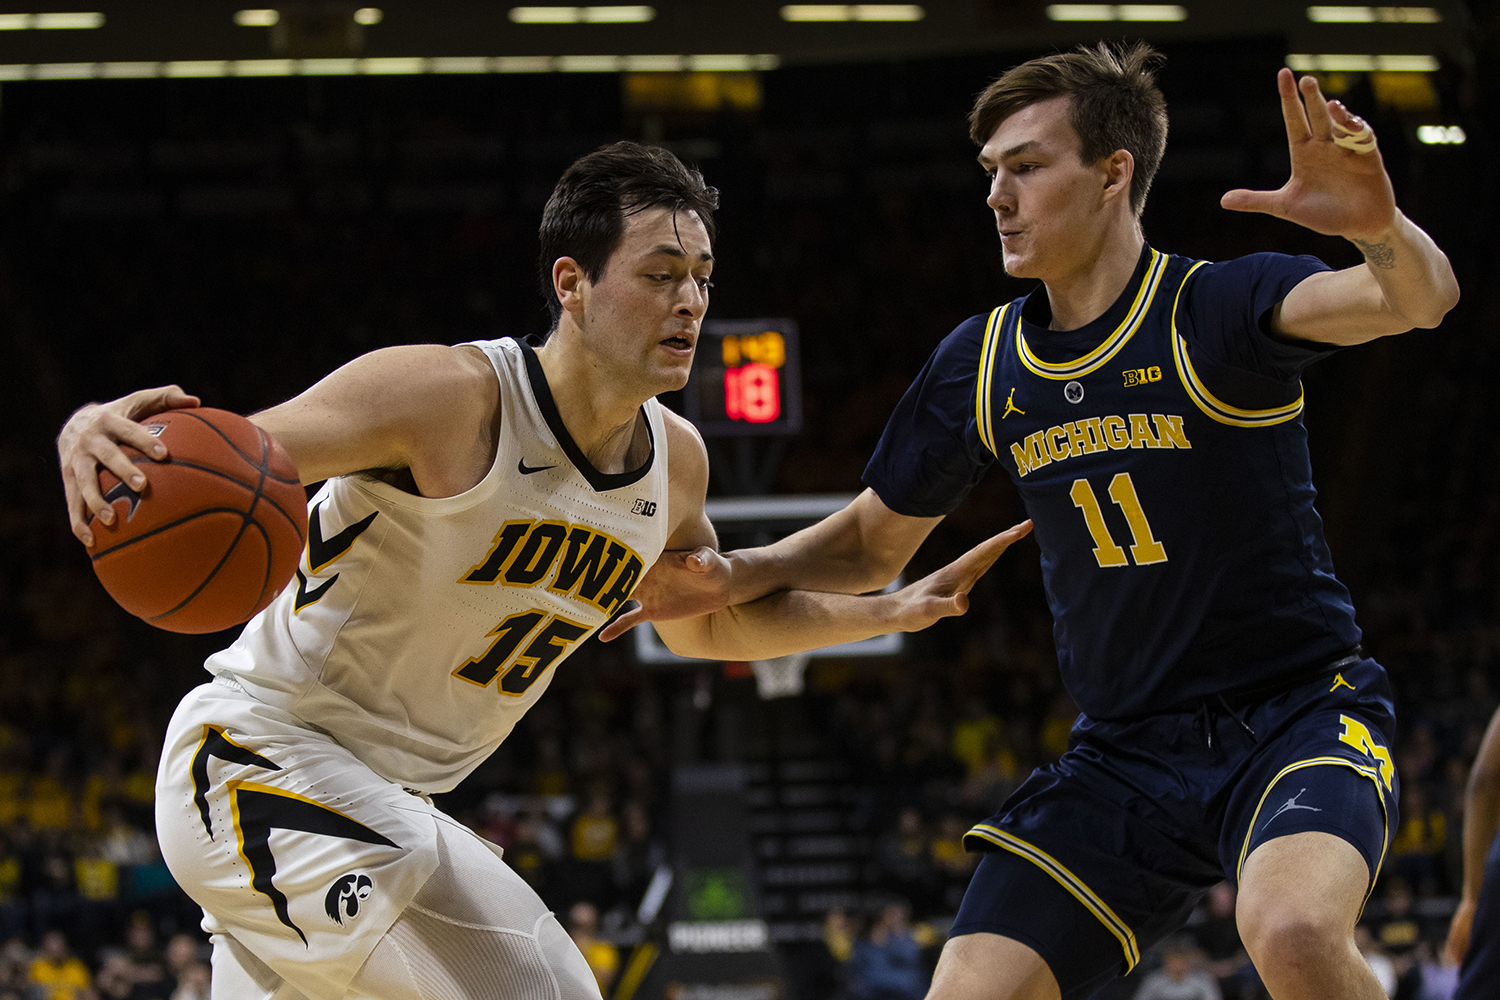 Iowa forward Ryan Kriener drives to the hoop during the Iowa/Michigan men's basketball game at Carver-Hawkeye Arena on Friday, February 1, 2019. The Hawkeyes took down the No. 5 ranked Wolverines, 74-59.